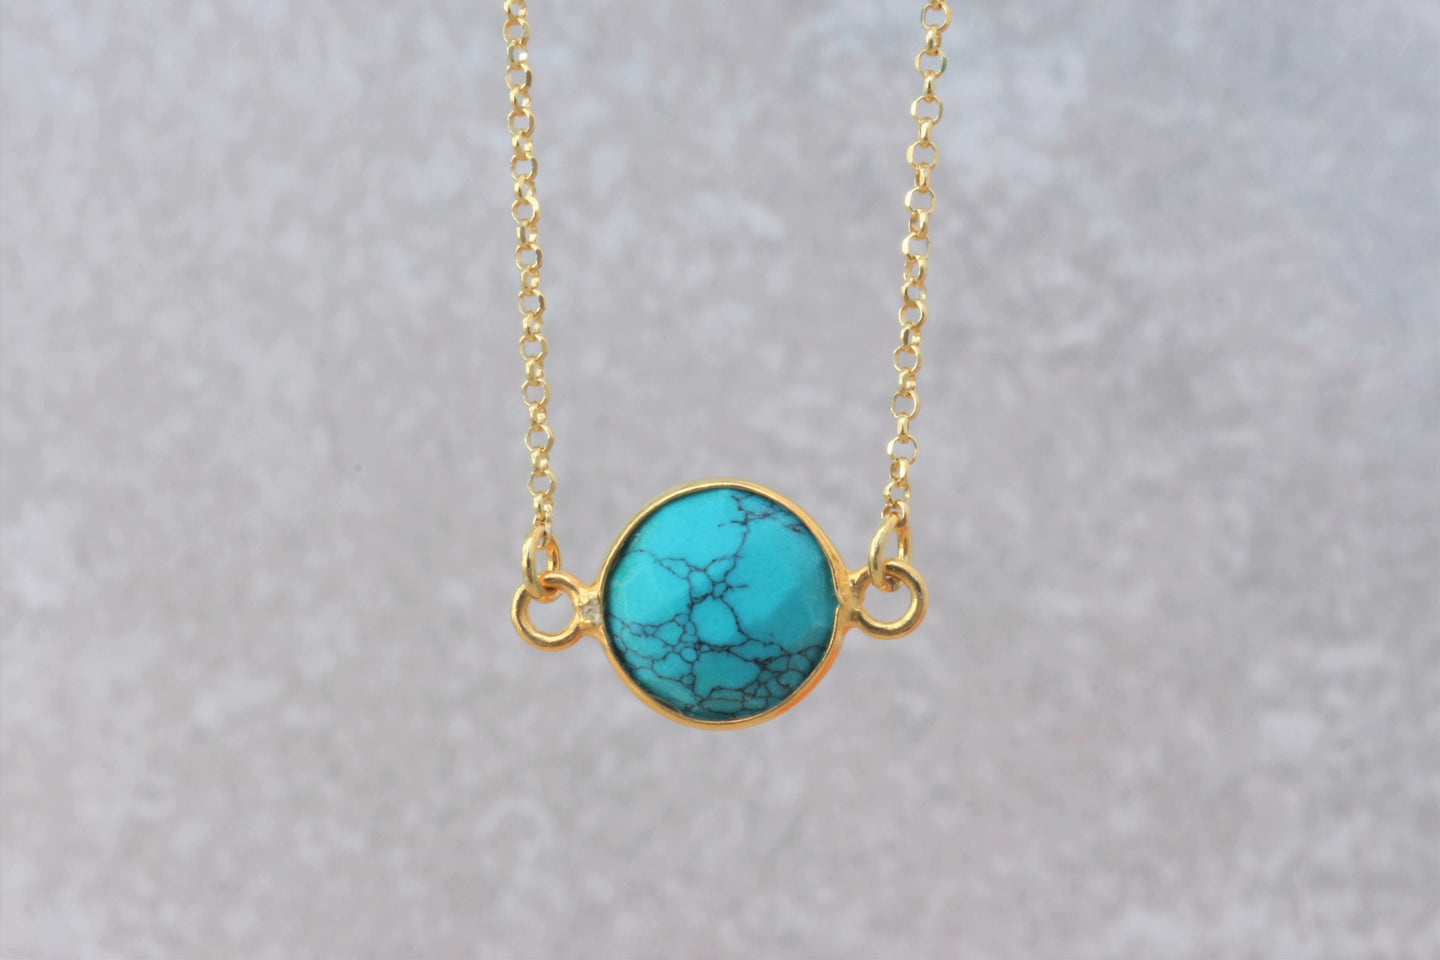 Turquoise_pendant_chain_necklace_for_women